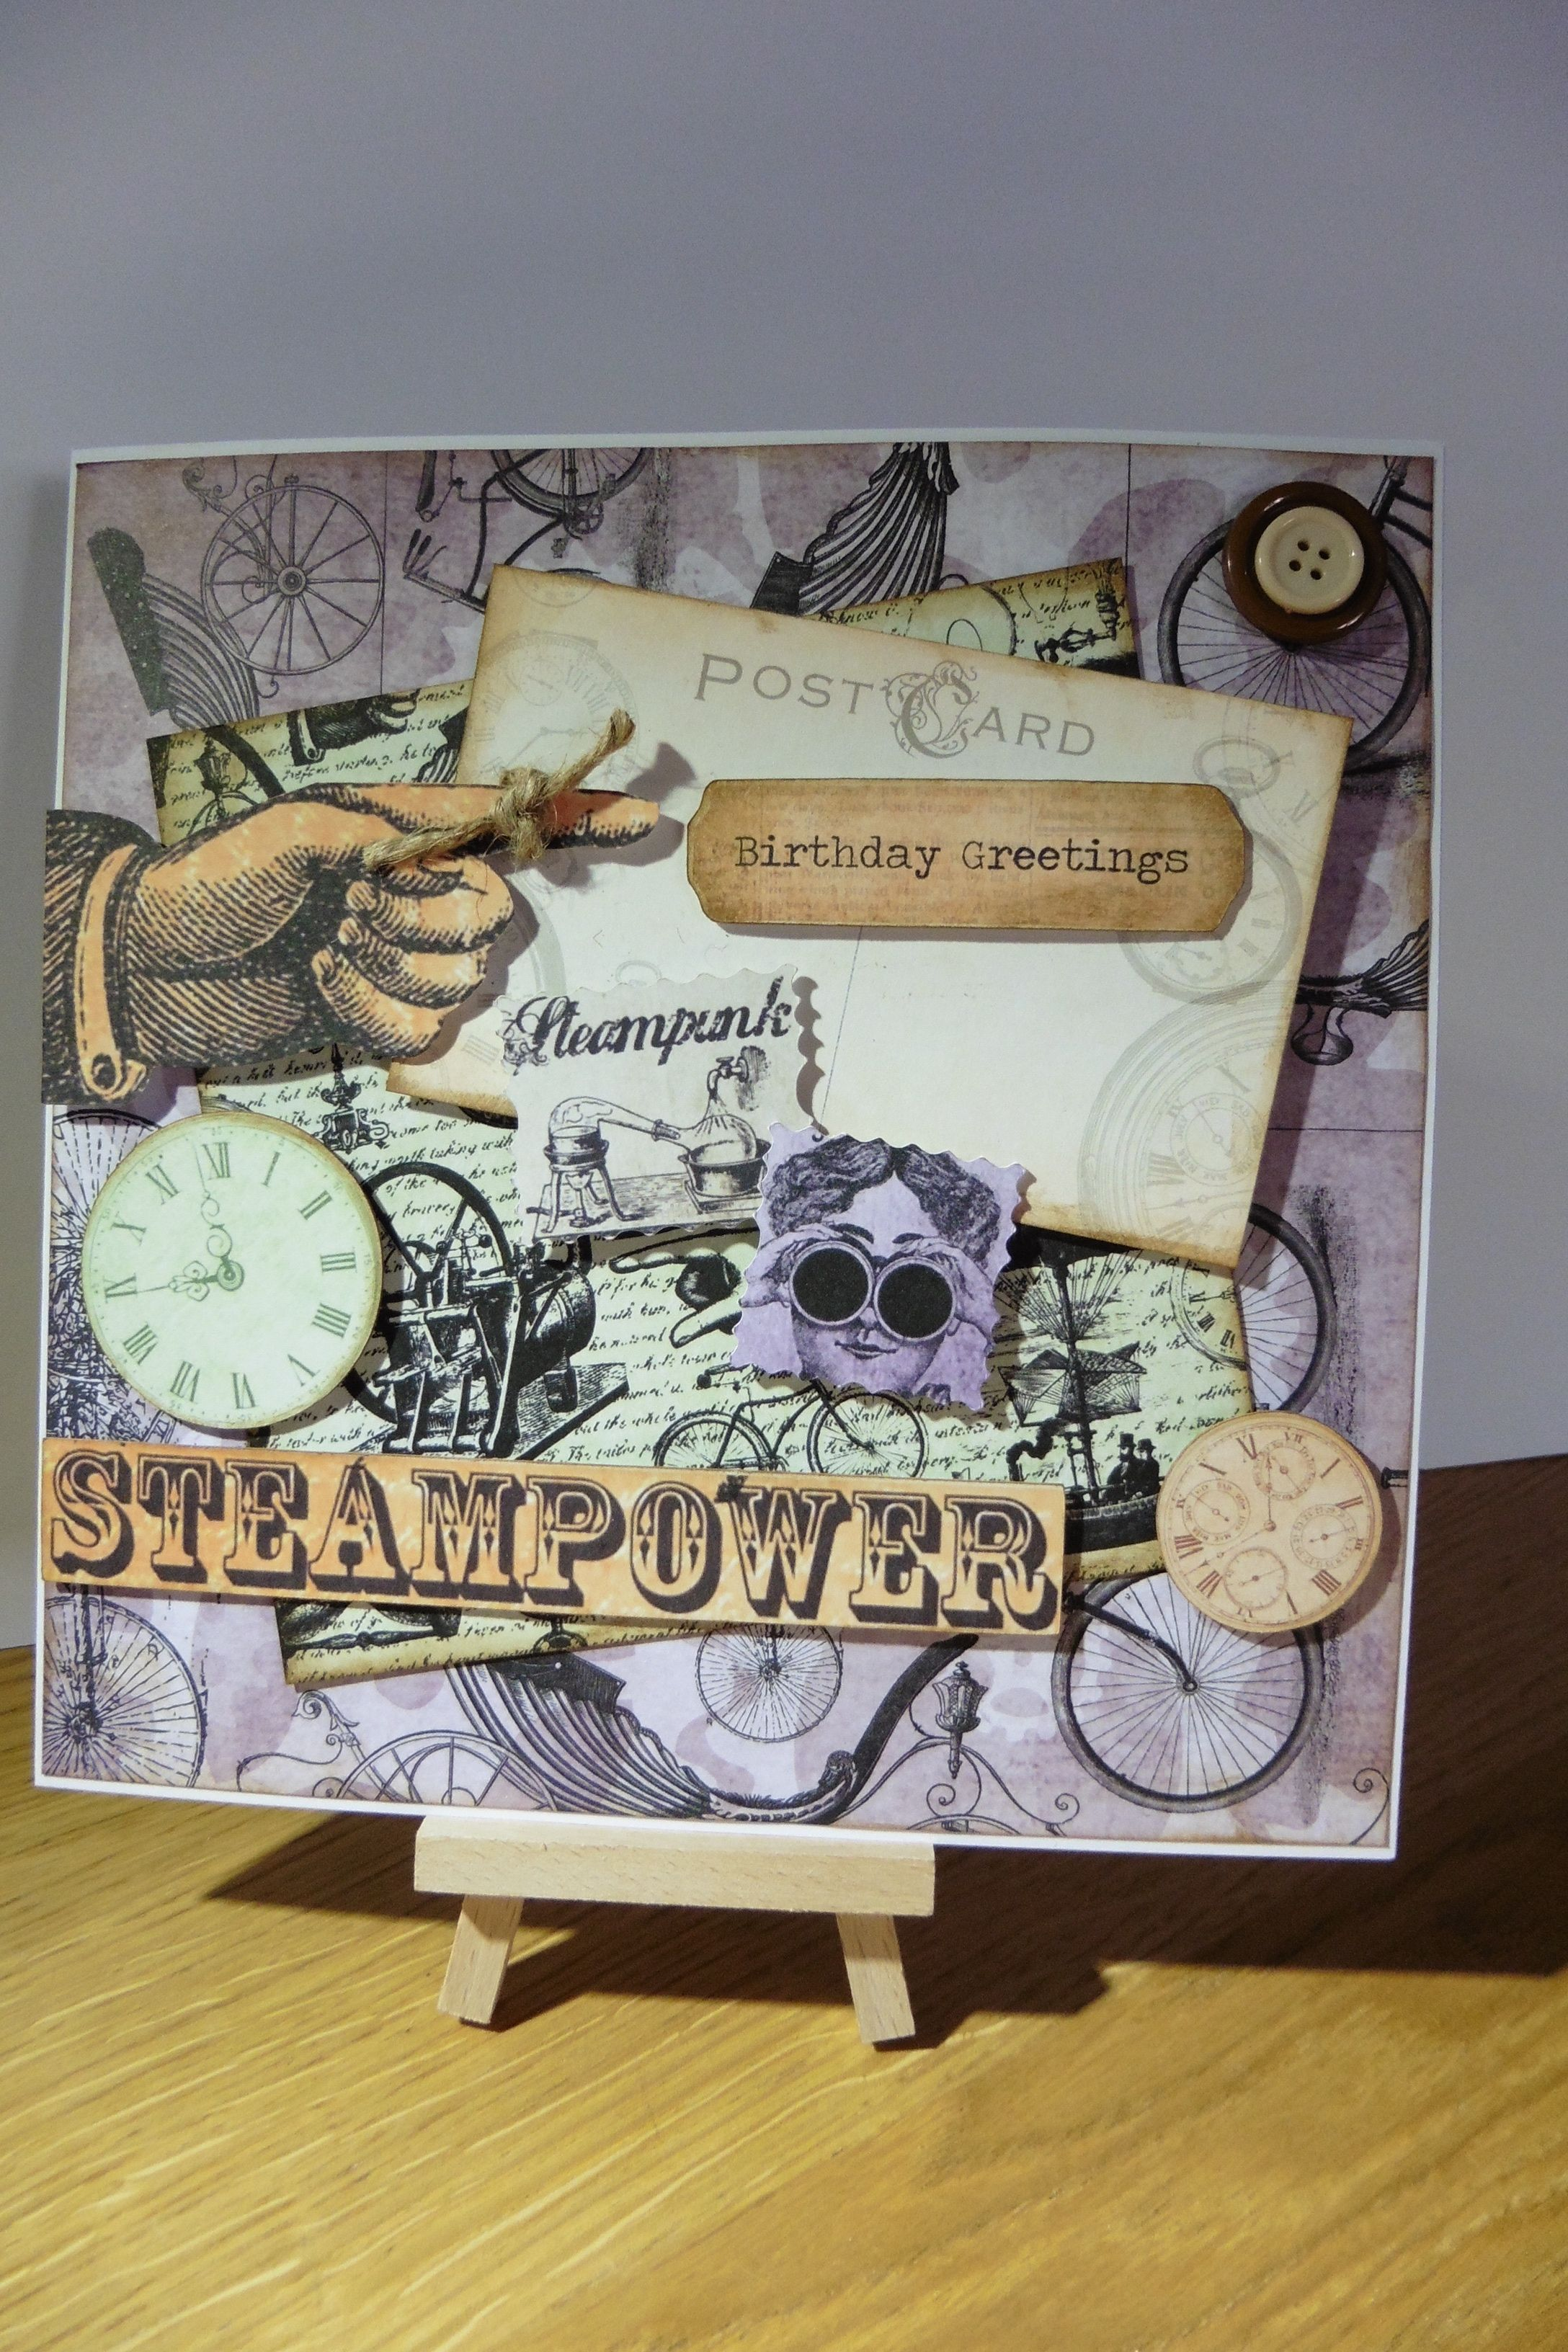 Steampunk Inspired Card My Handcrafted Greetings Cards Pinterest